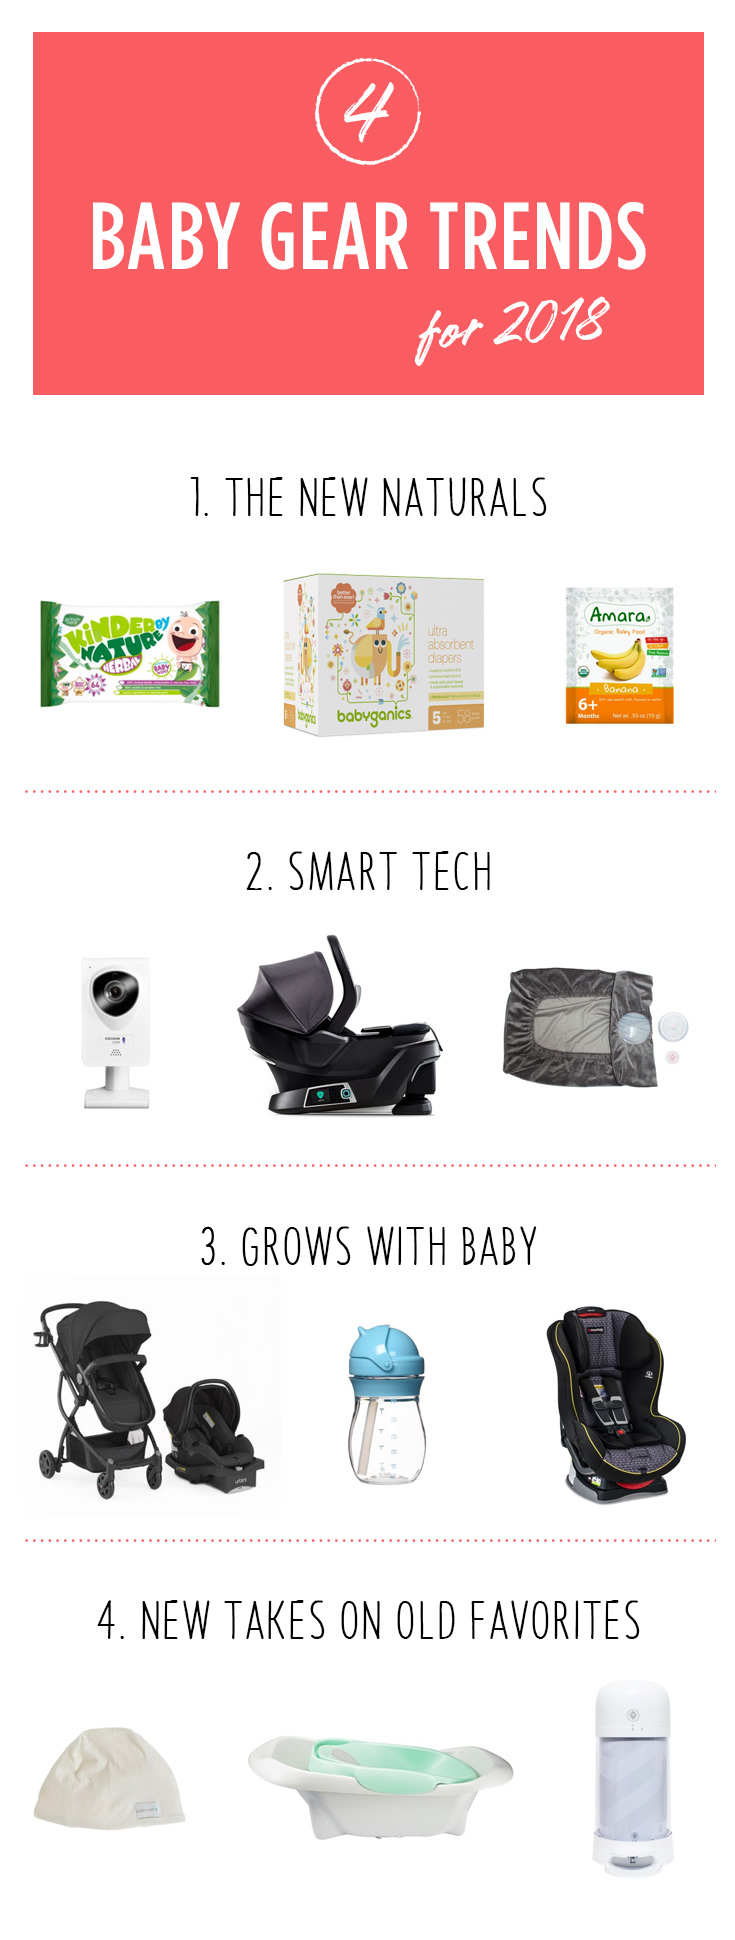 From new naturals to trendy tech, these are the trends making life with baby a little easier.